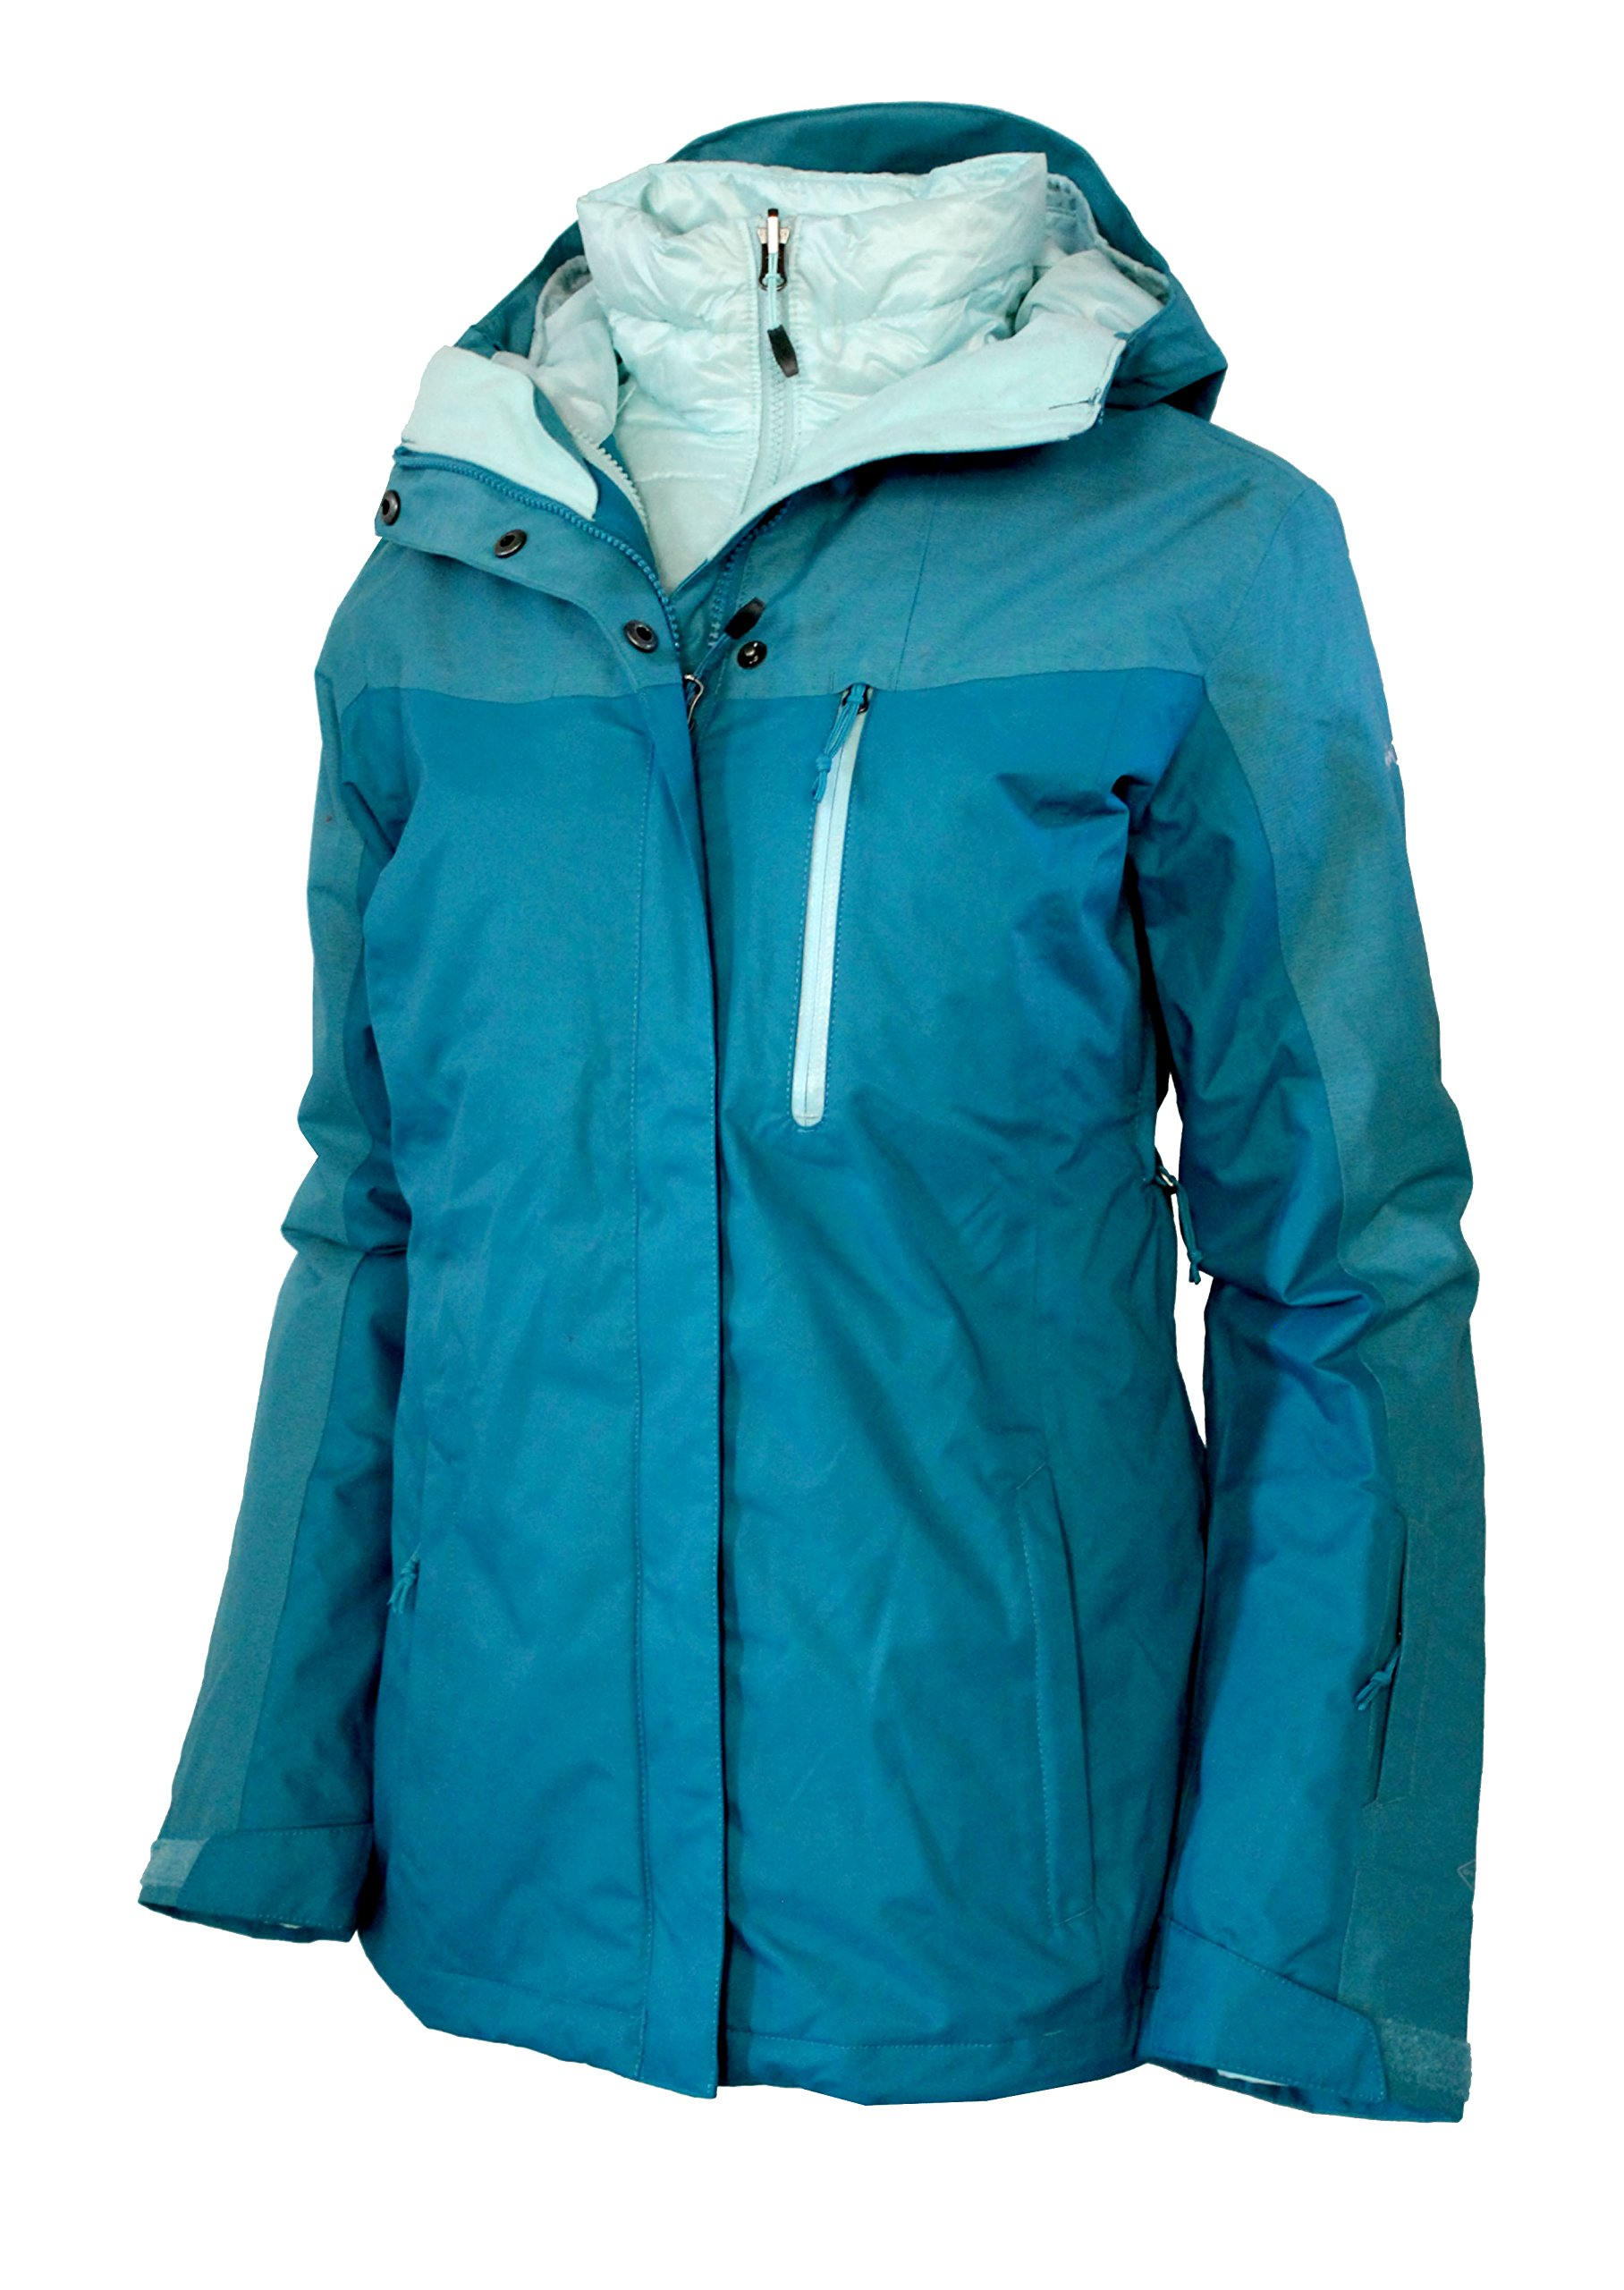 Columbia Women's Superpipe Slope 3 in 1 interchange Winter Omni Heat 650 DOWN Ski Jacket (XL, Deep Marine) by Columbia